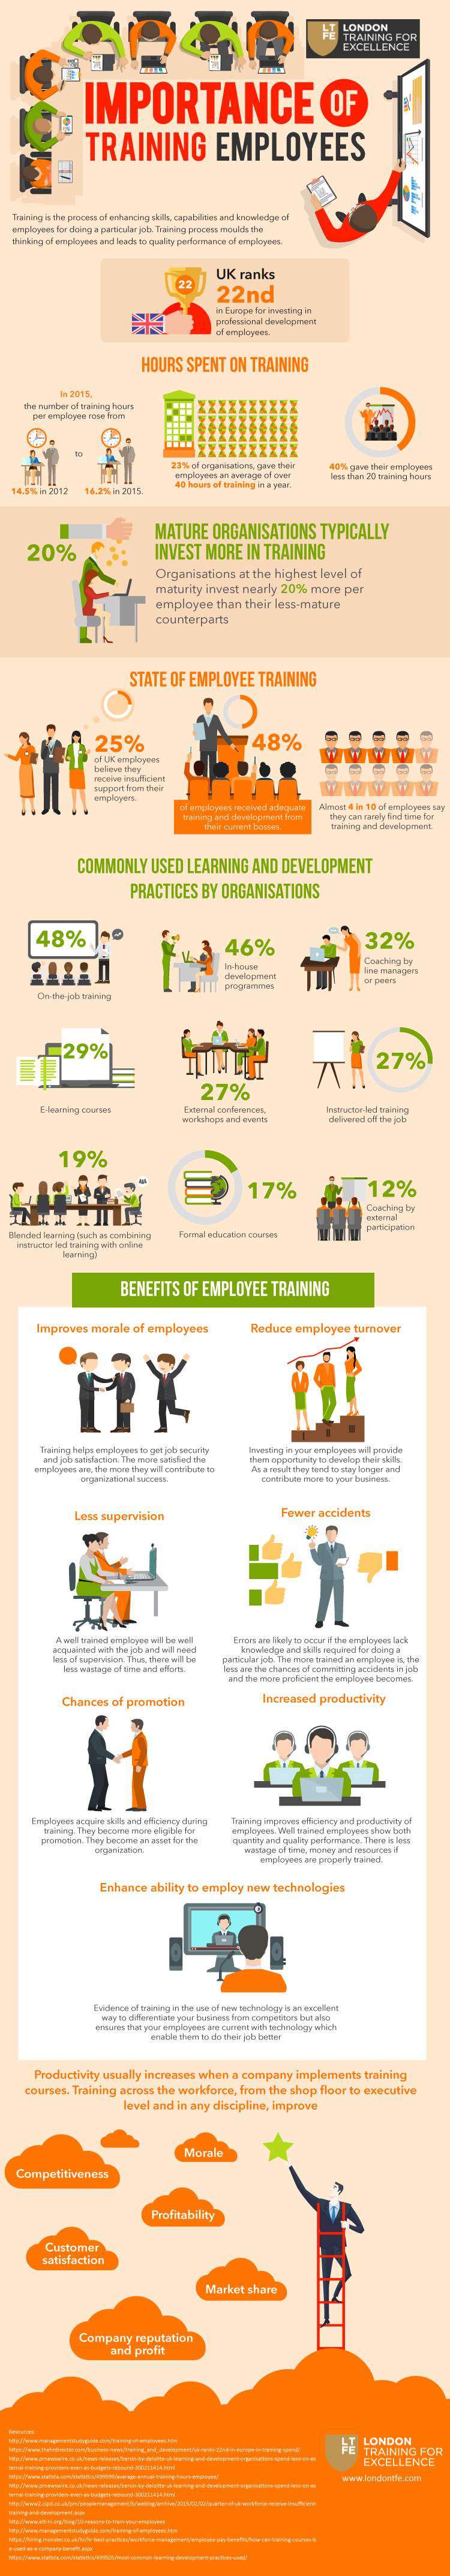 The Importance of Training Employees